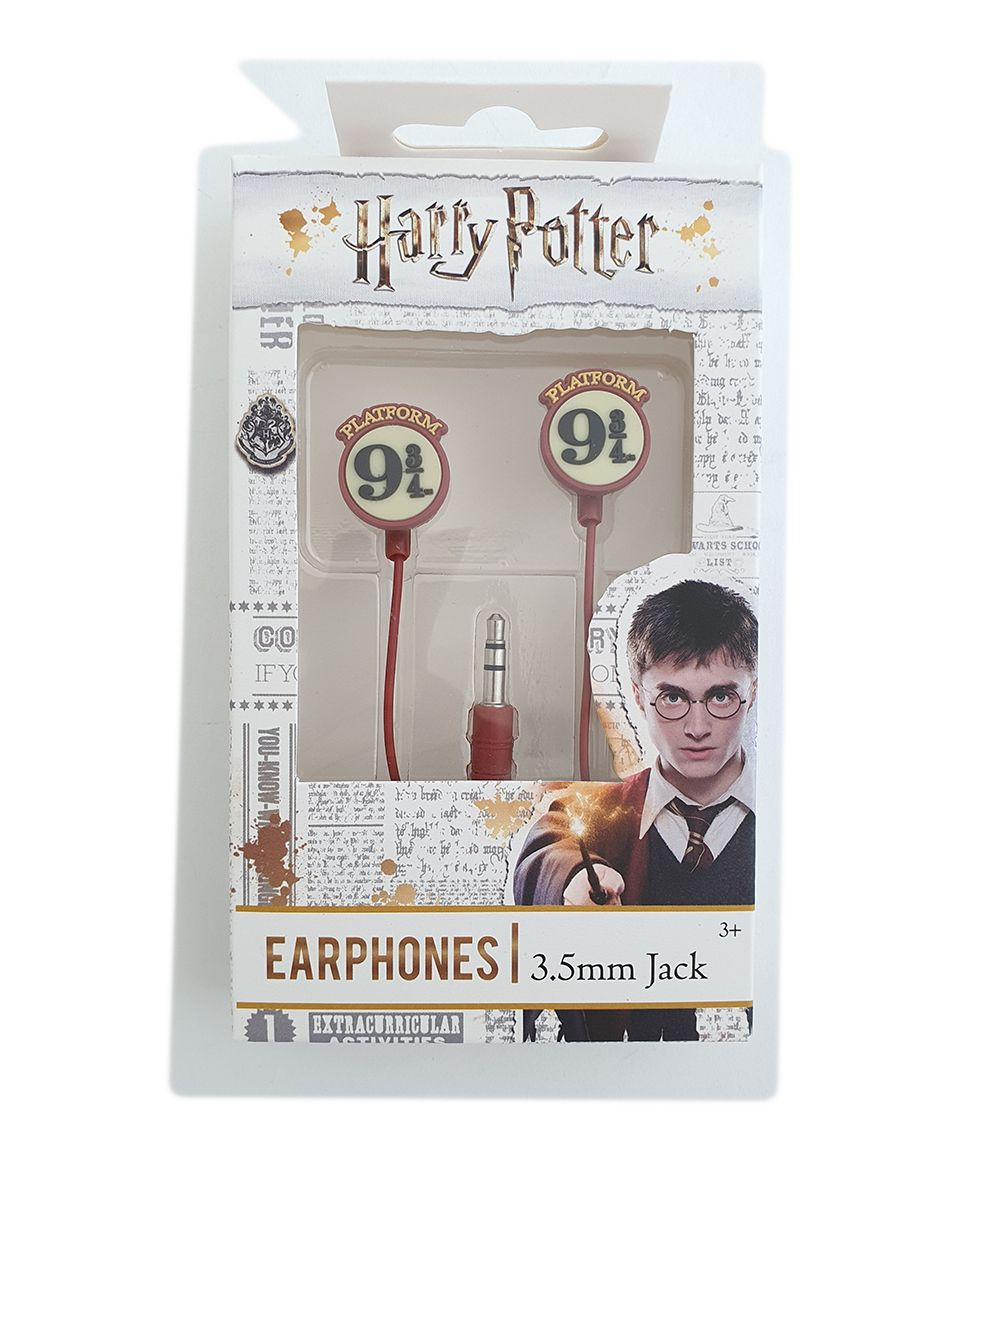 Harry Potter accessories earphones